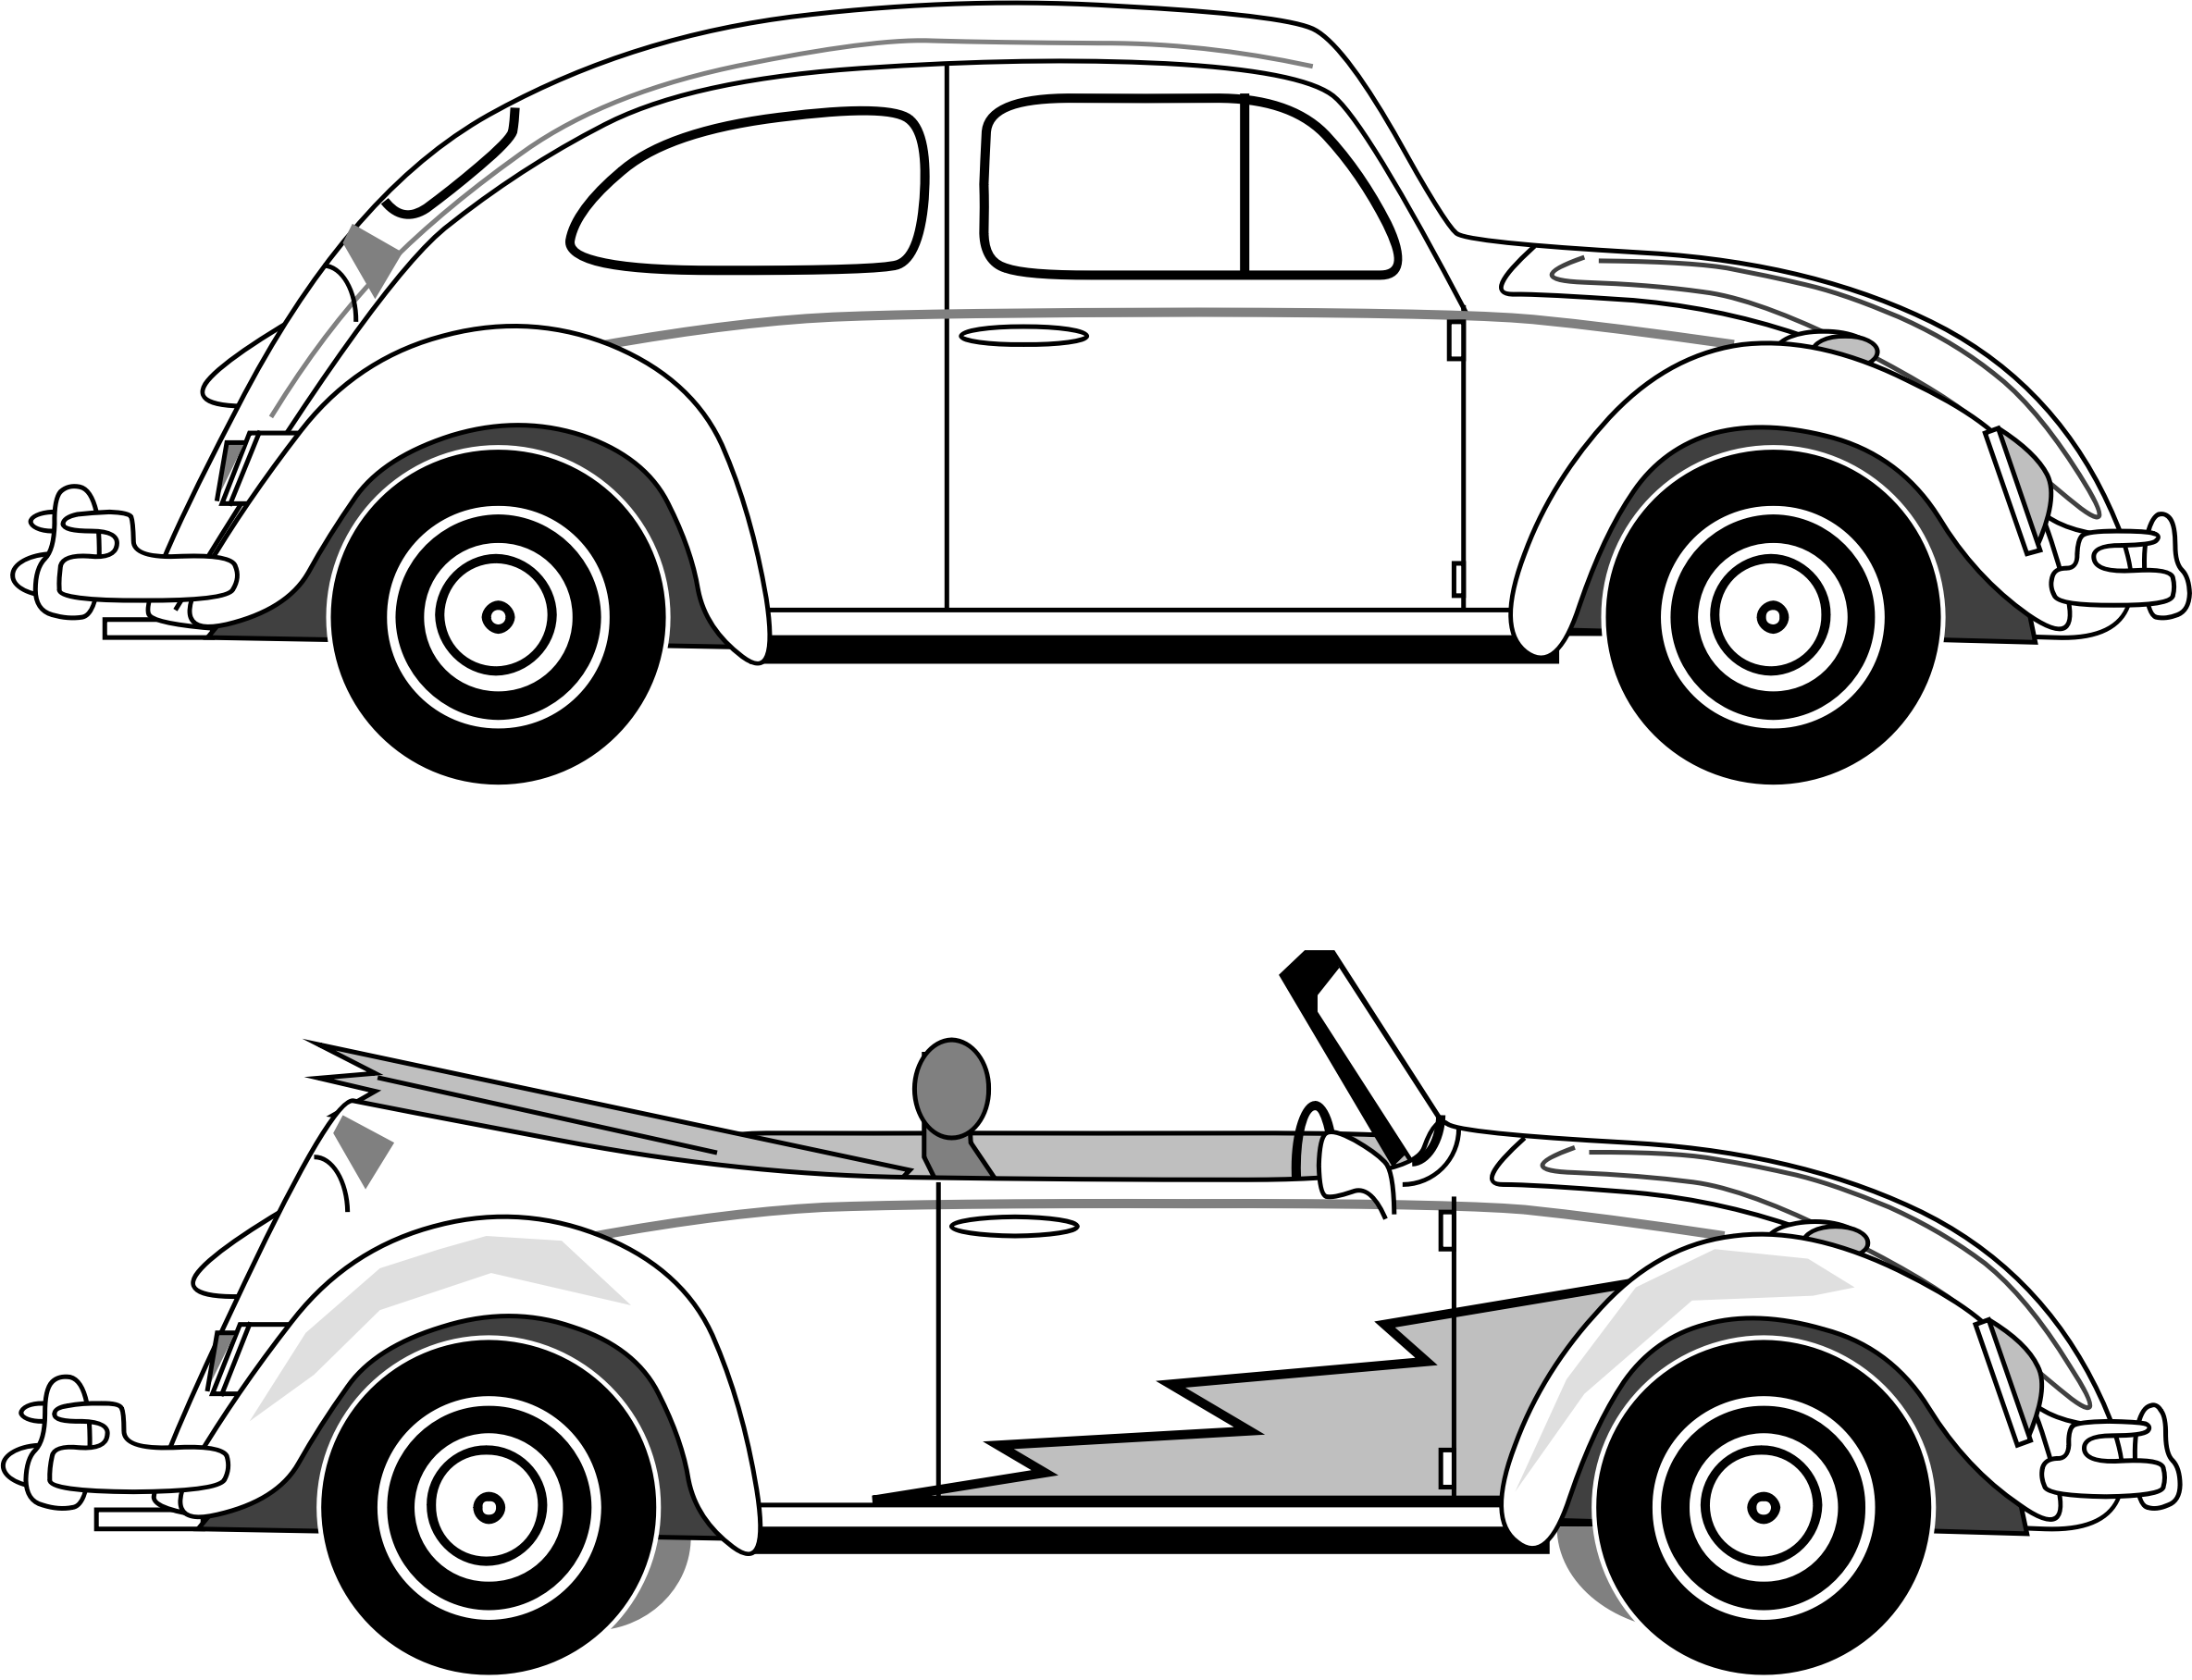 Vw silhouette at getdrawings. Clipart cars beetle